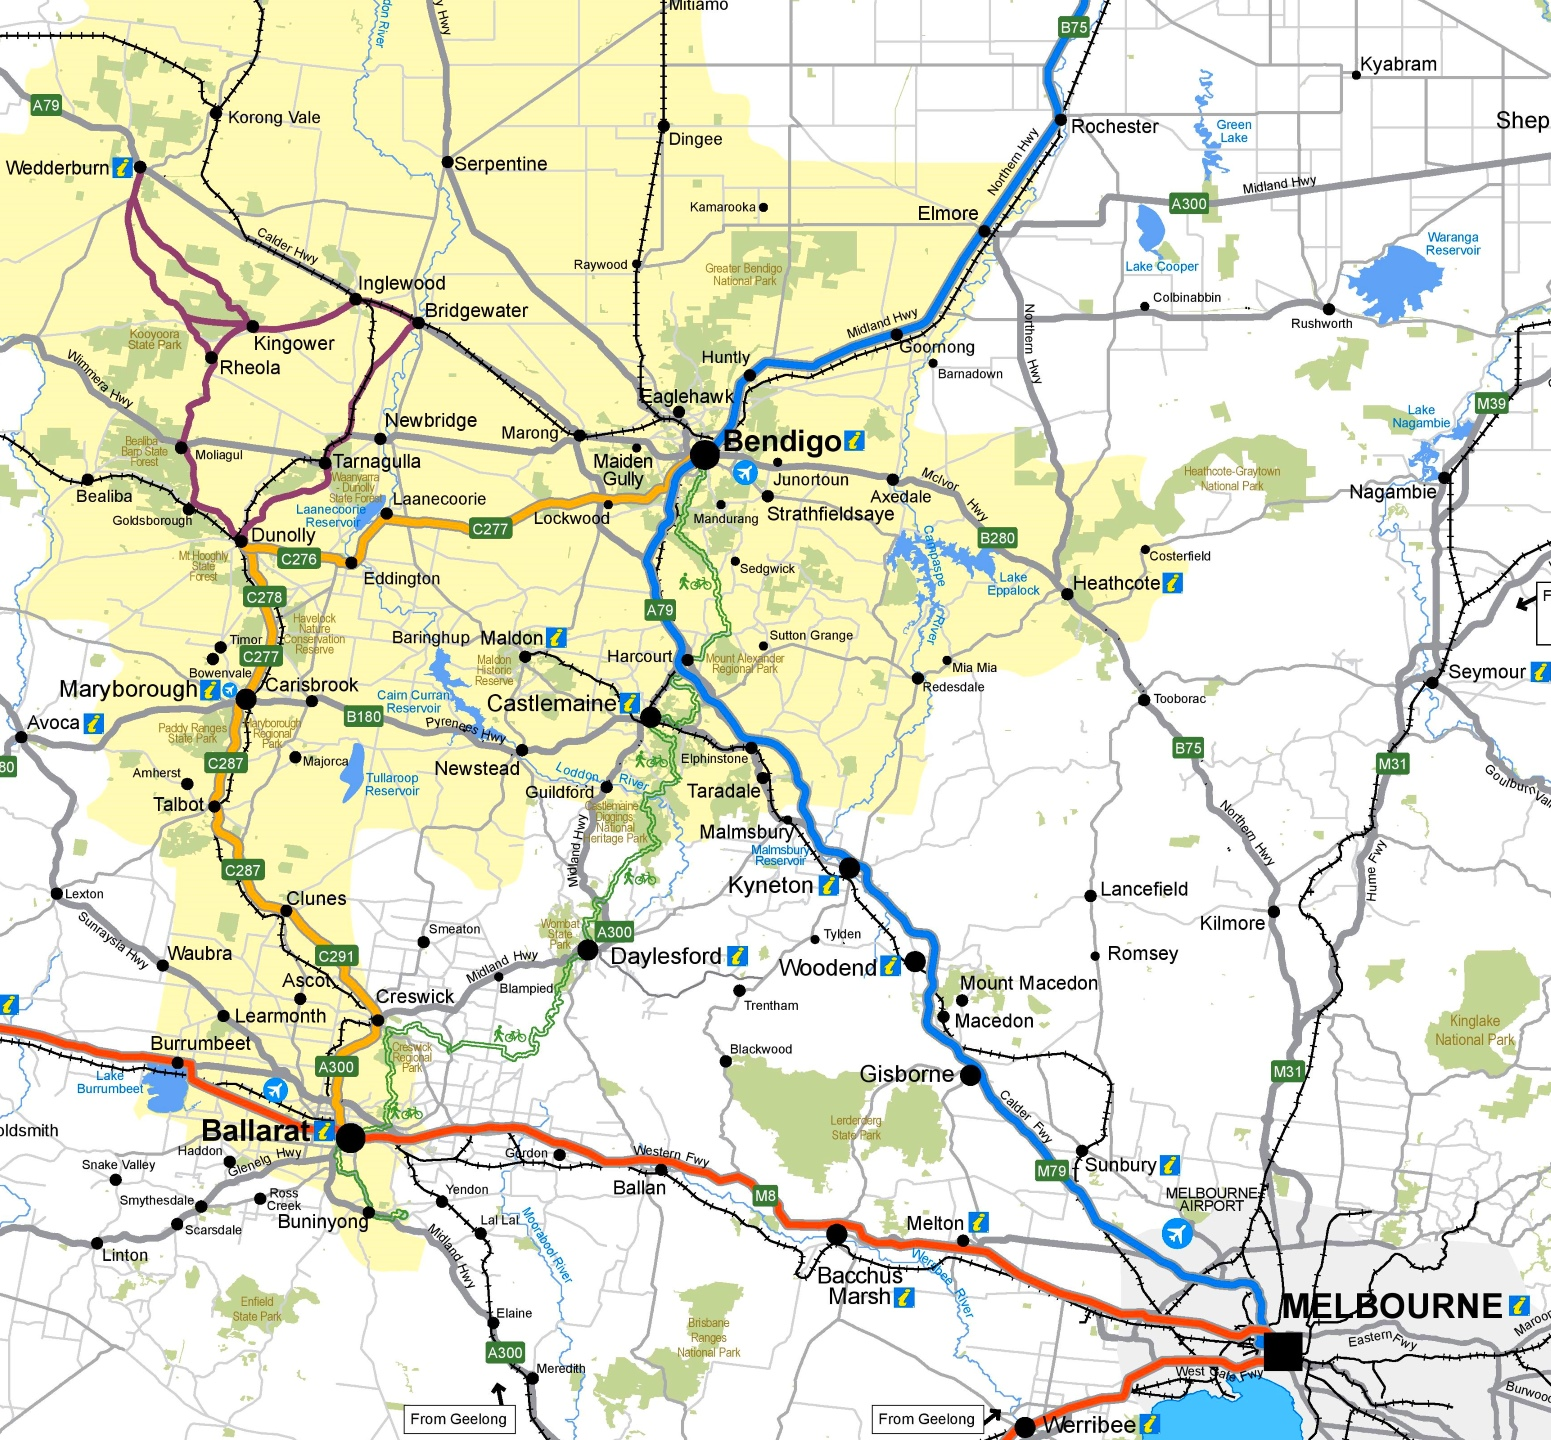 Bendigo area road map